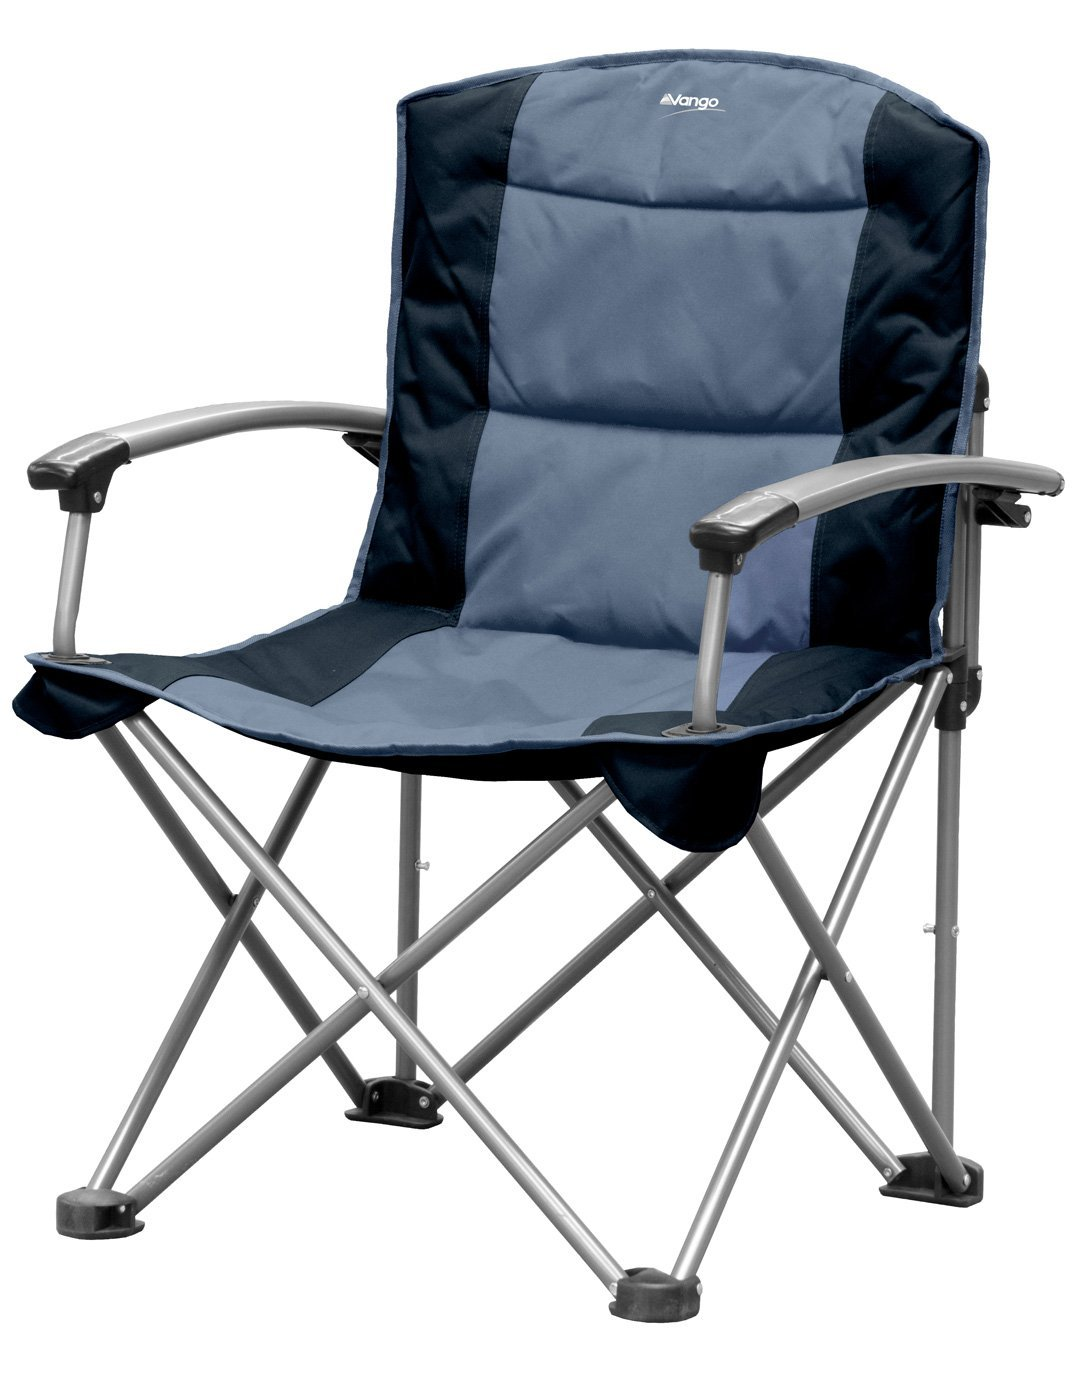 chairs comfortable com for campingherpowerhustle moon herpowerhustle deluxe camping outdoor chair